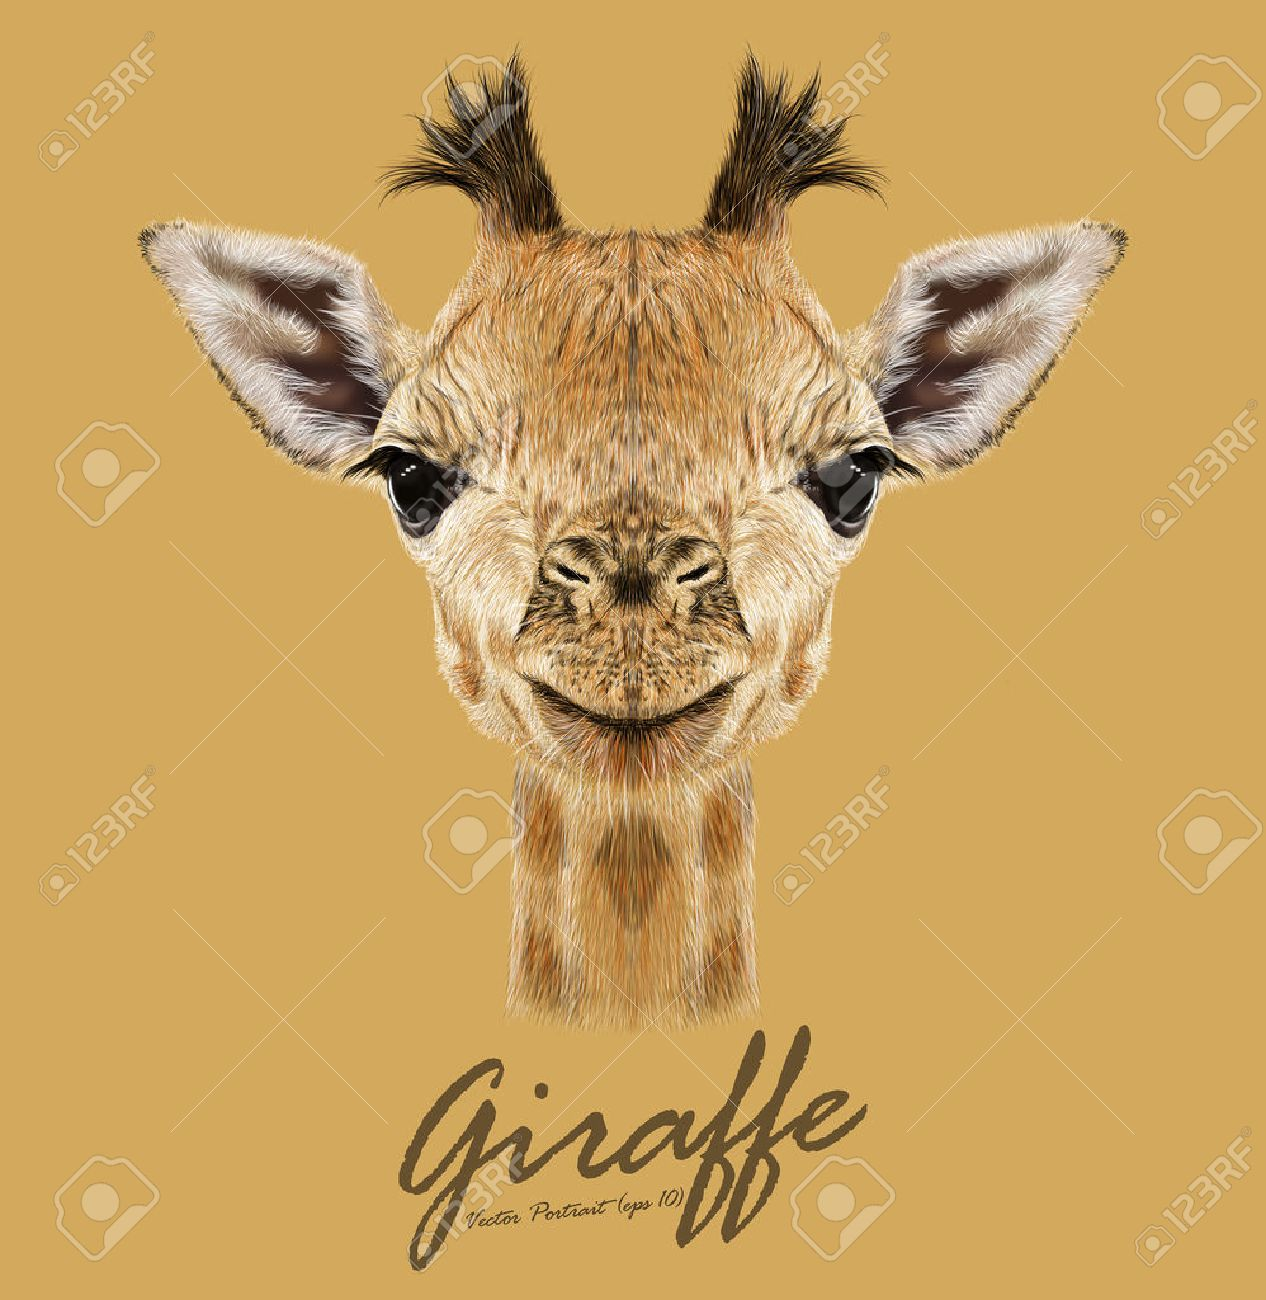 350 727 wild animal stock vector illustration and royalty free